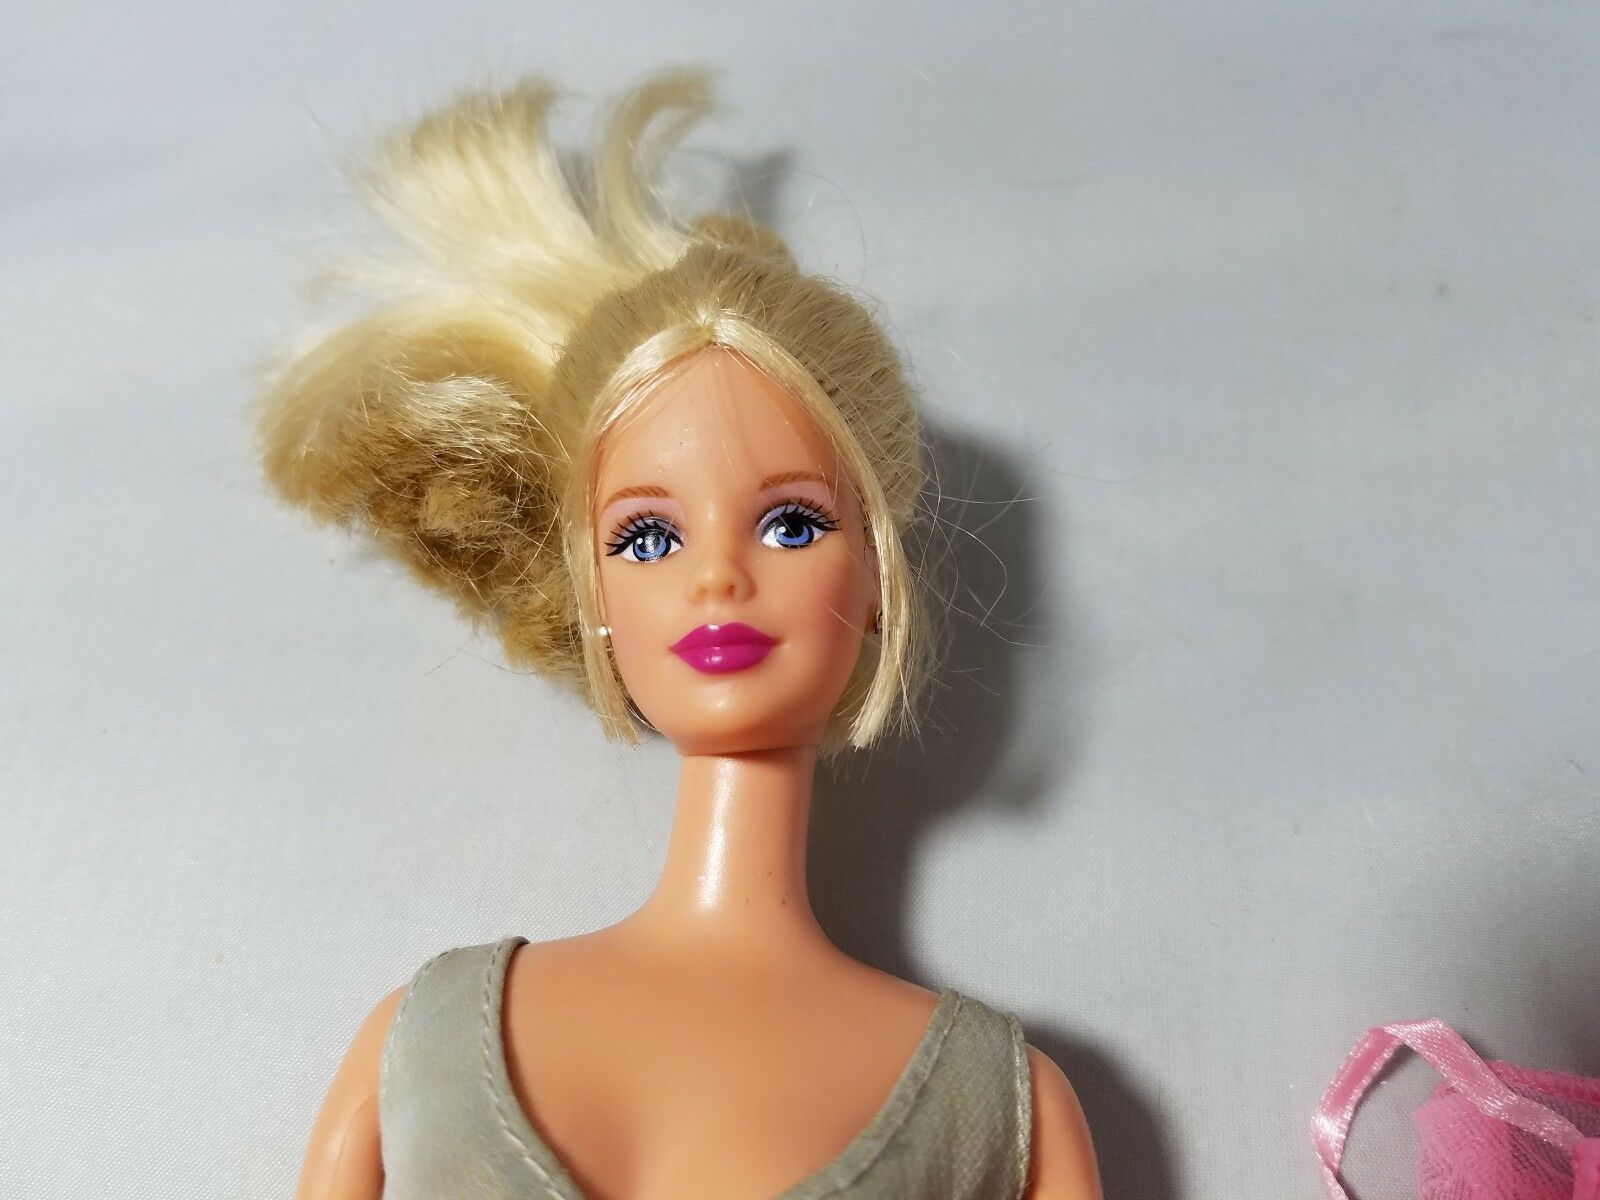 Vintage Barbie Doll 1991 Blonde Hair With Ponytail 2 Outfits Dresses Pink